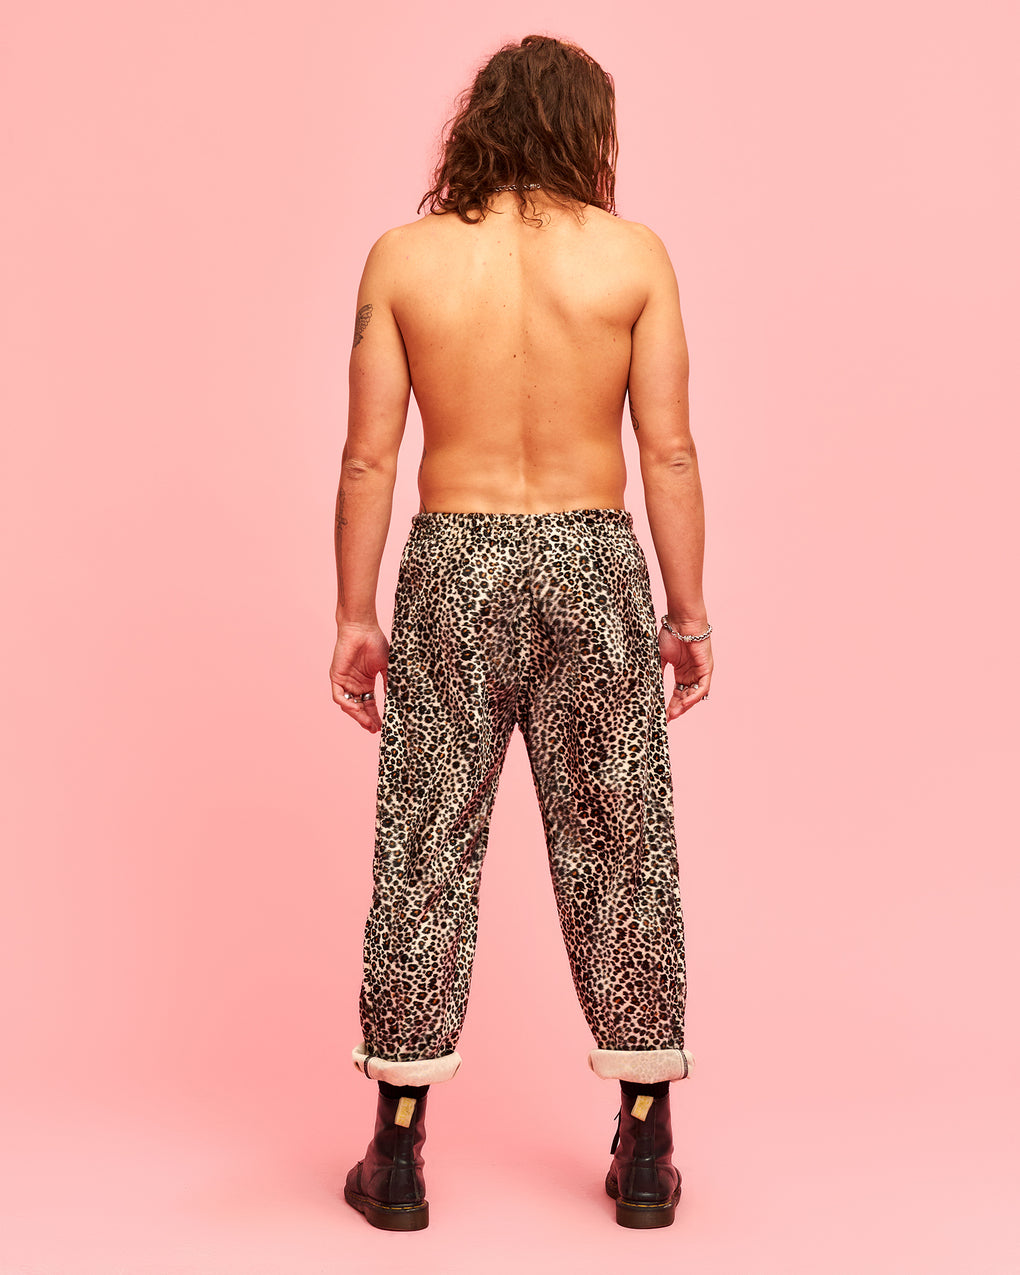 LEOPARD PARTY PANTS - FROTHLYF